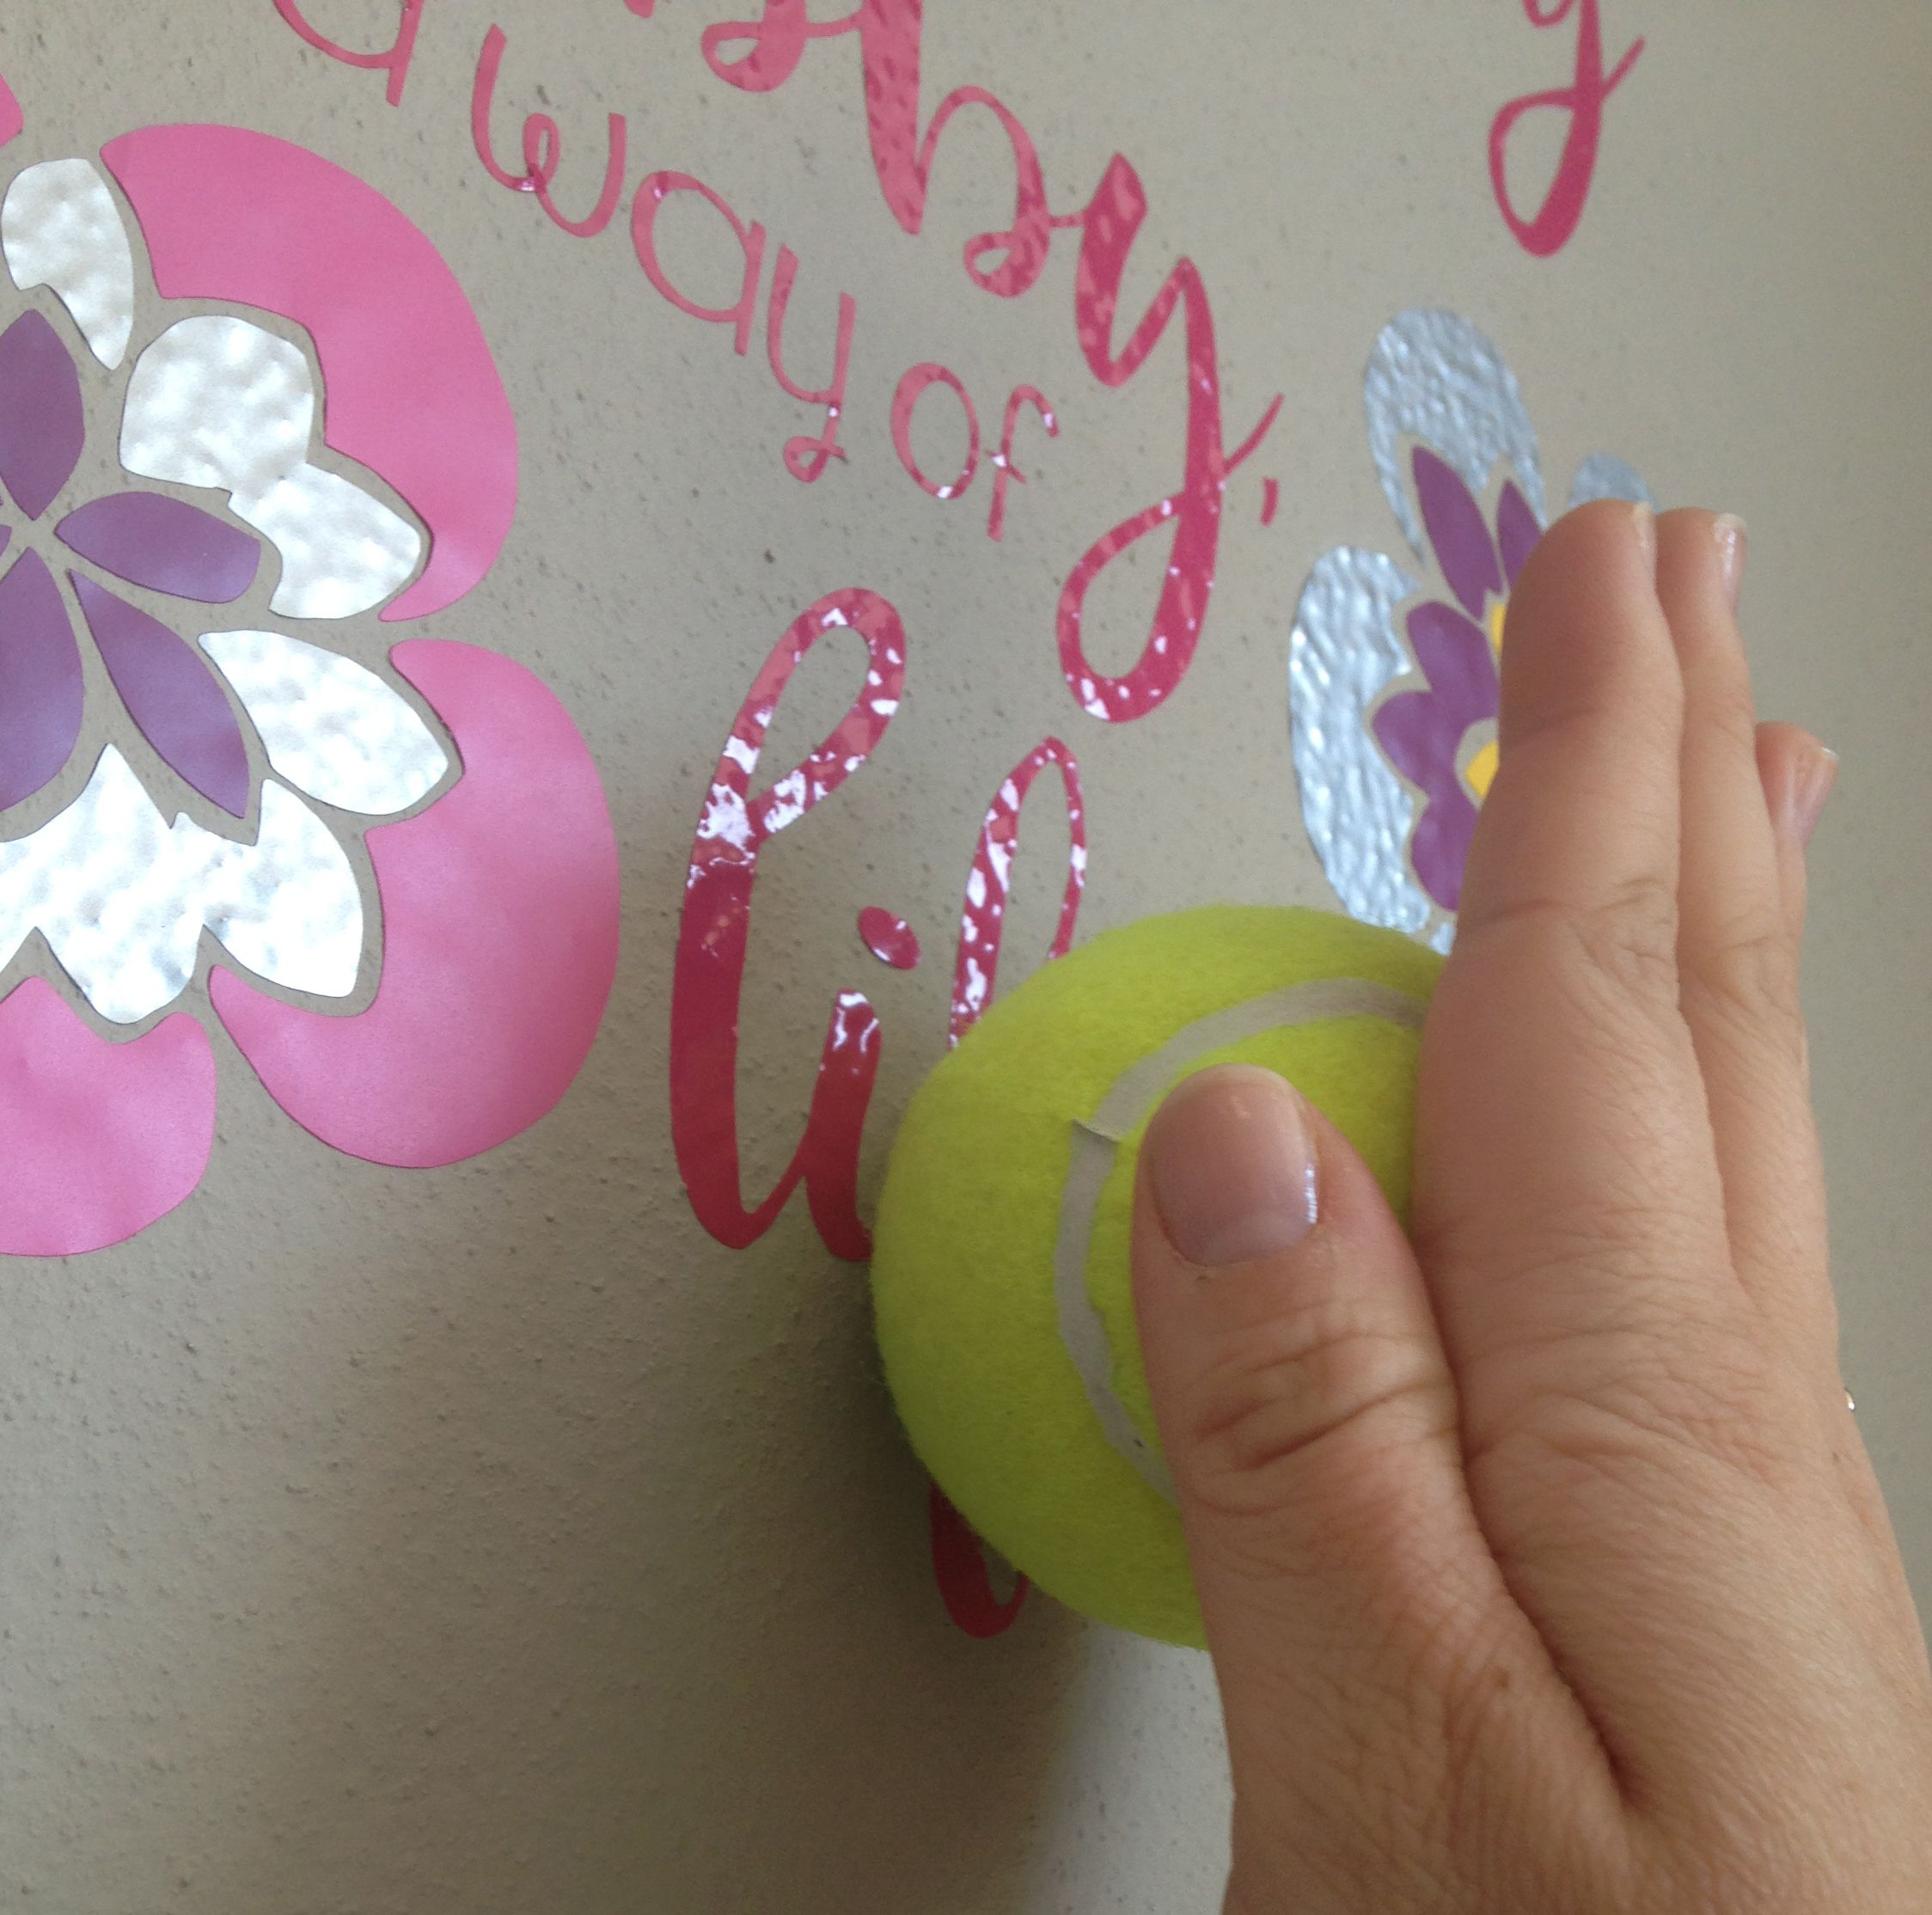 Use A Tennis Ball To Get Vinyl To Stick To Textured Walls SMART - How to make vinyl decals stick to textured walls